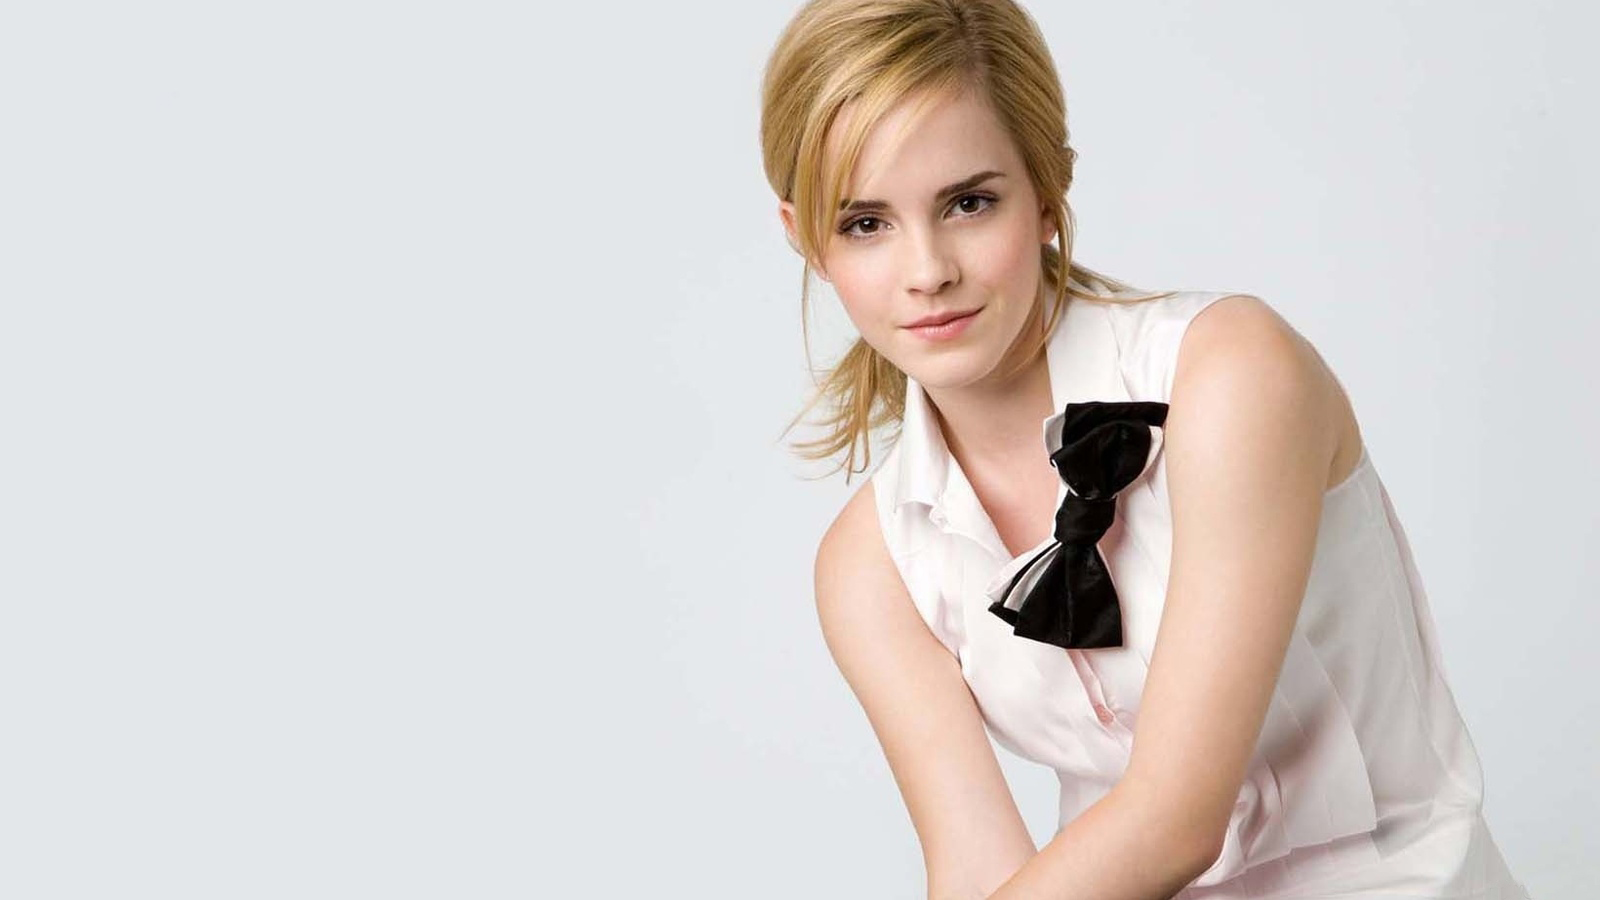 Actress photographs emma watson pink dress beauty world for Today hot pic